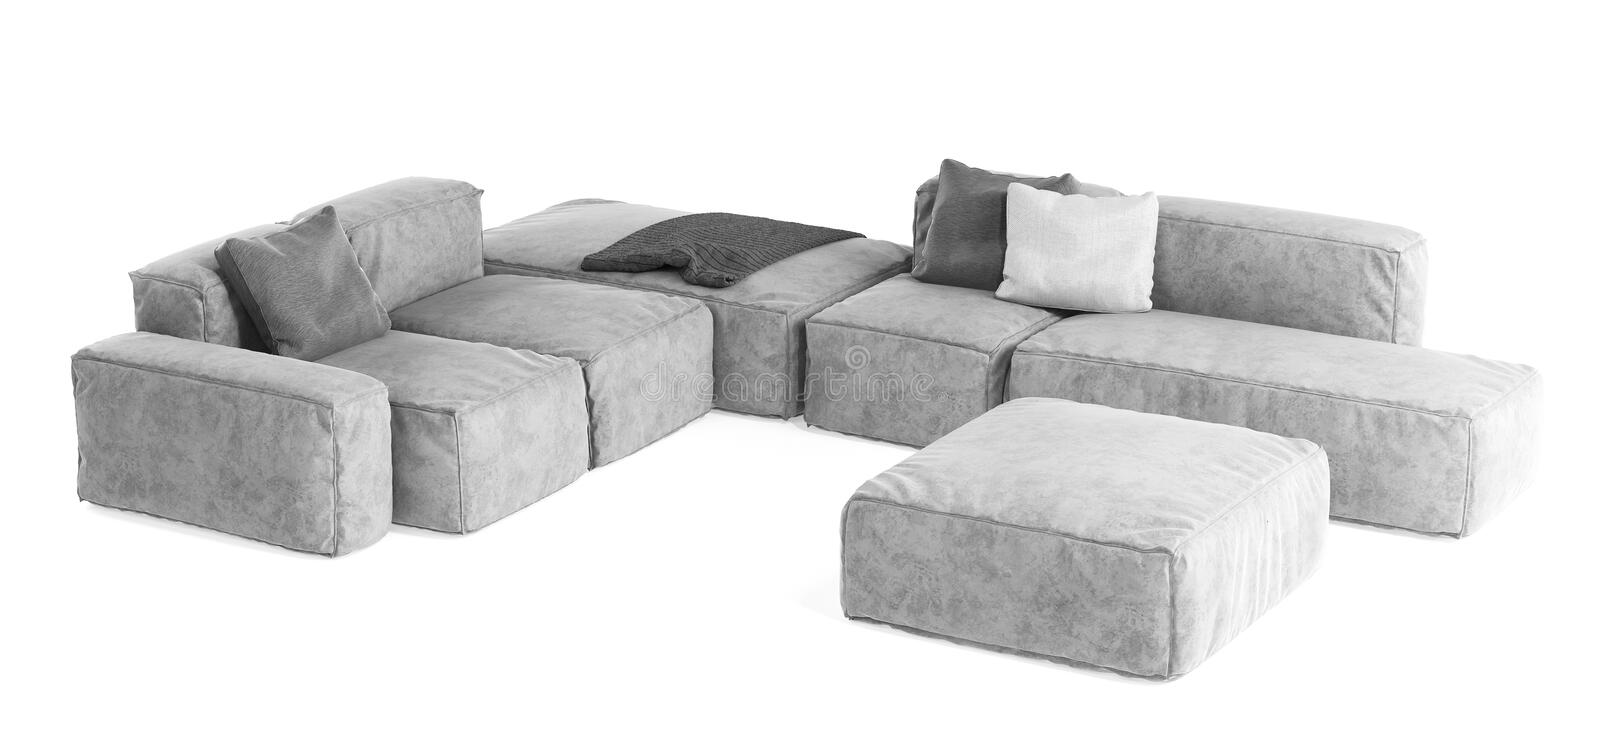 Modern gray modular sofa with pillows and plaid isolated on white background. Furniture, interior object, stylish sofa. High tech. Style, subject for stock images